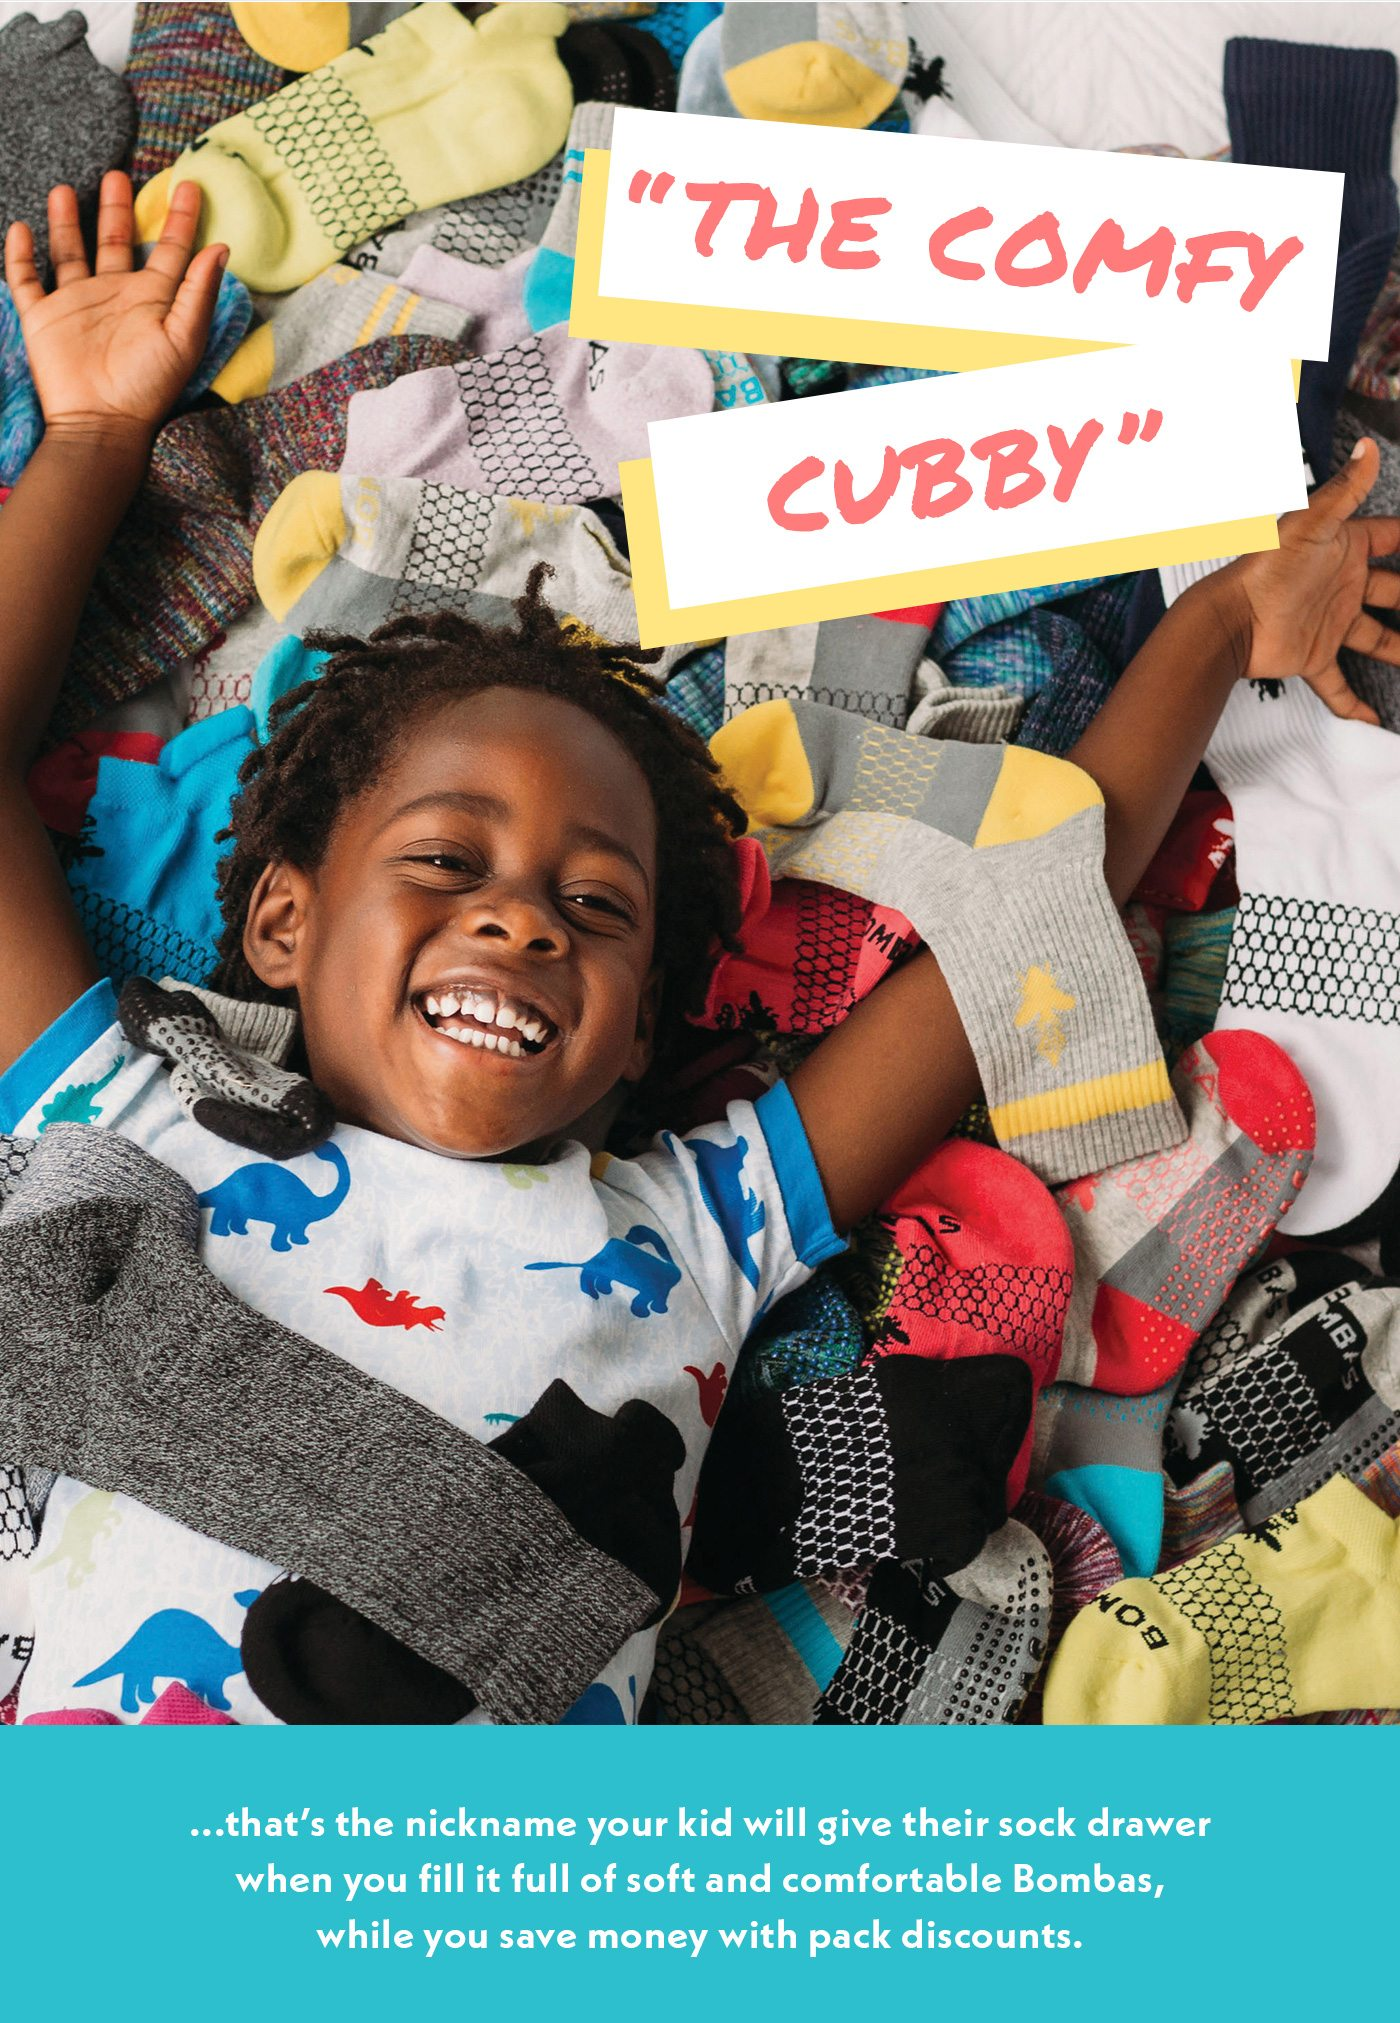 The Comfy Cubby | ... that's the nickname your kids will give their sock drawer when you fill it full of soft and comfortable Bombas, while you save money with pack discounts.